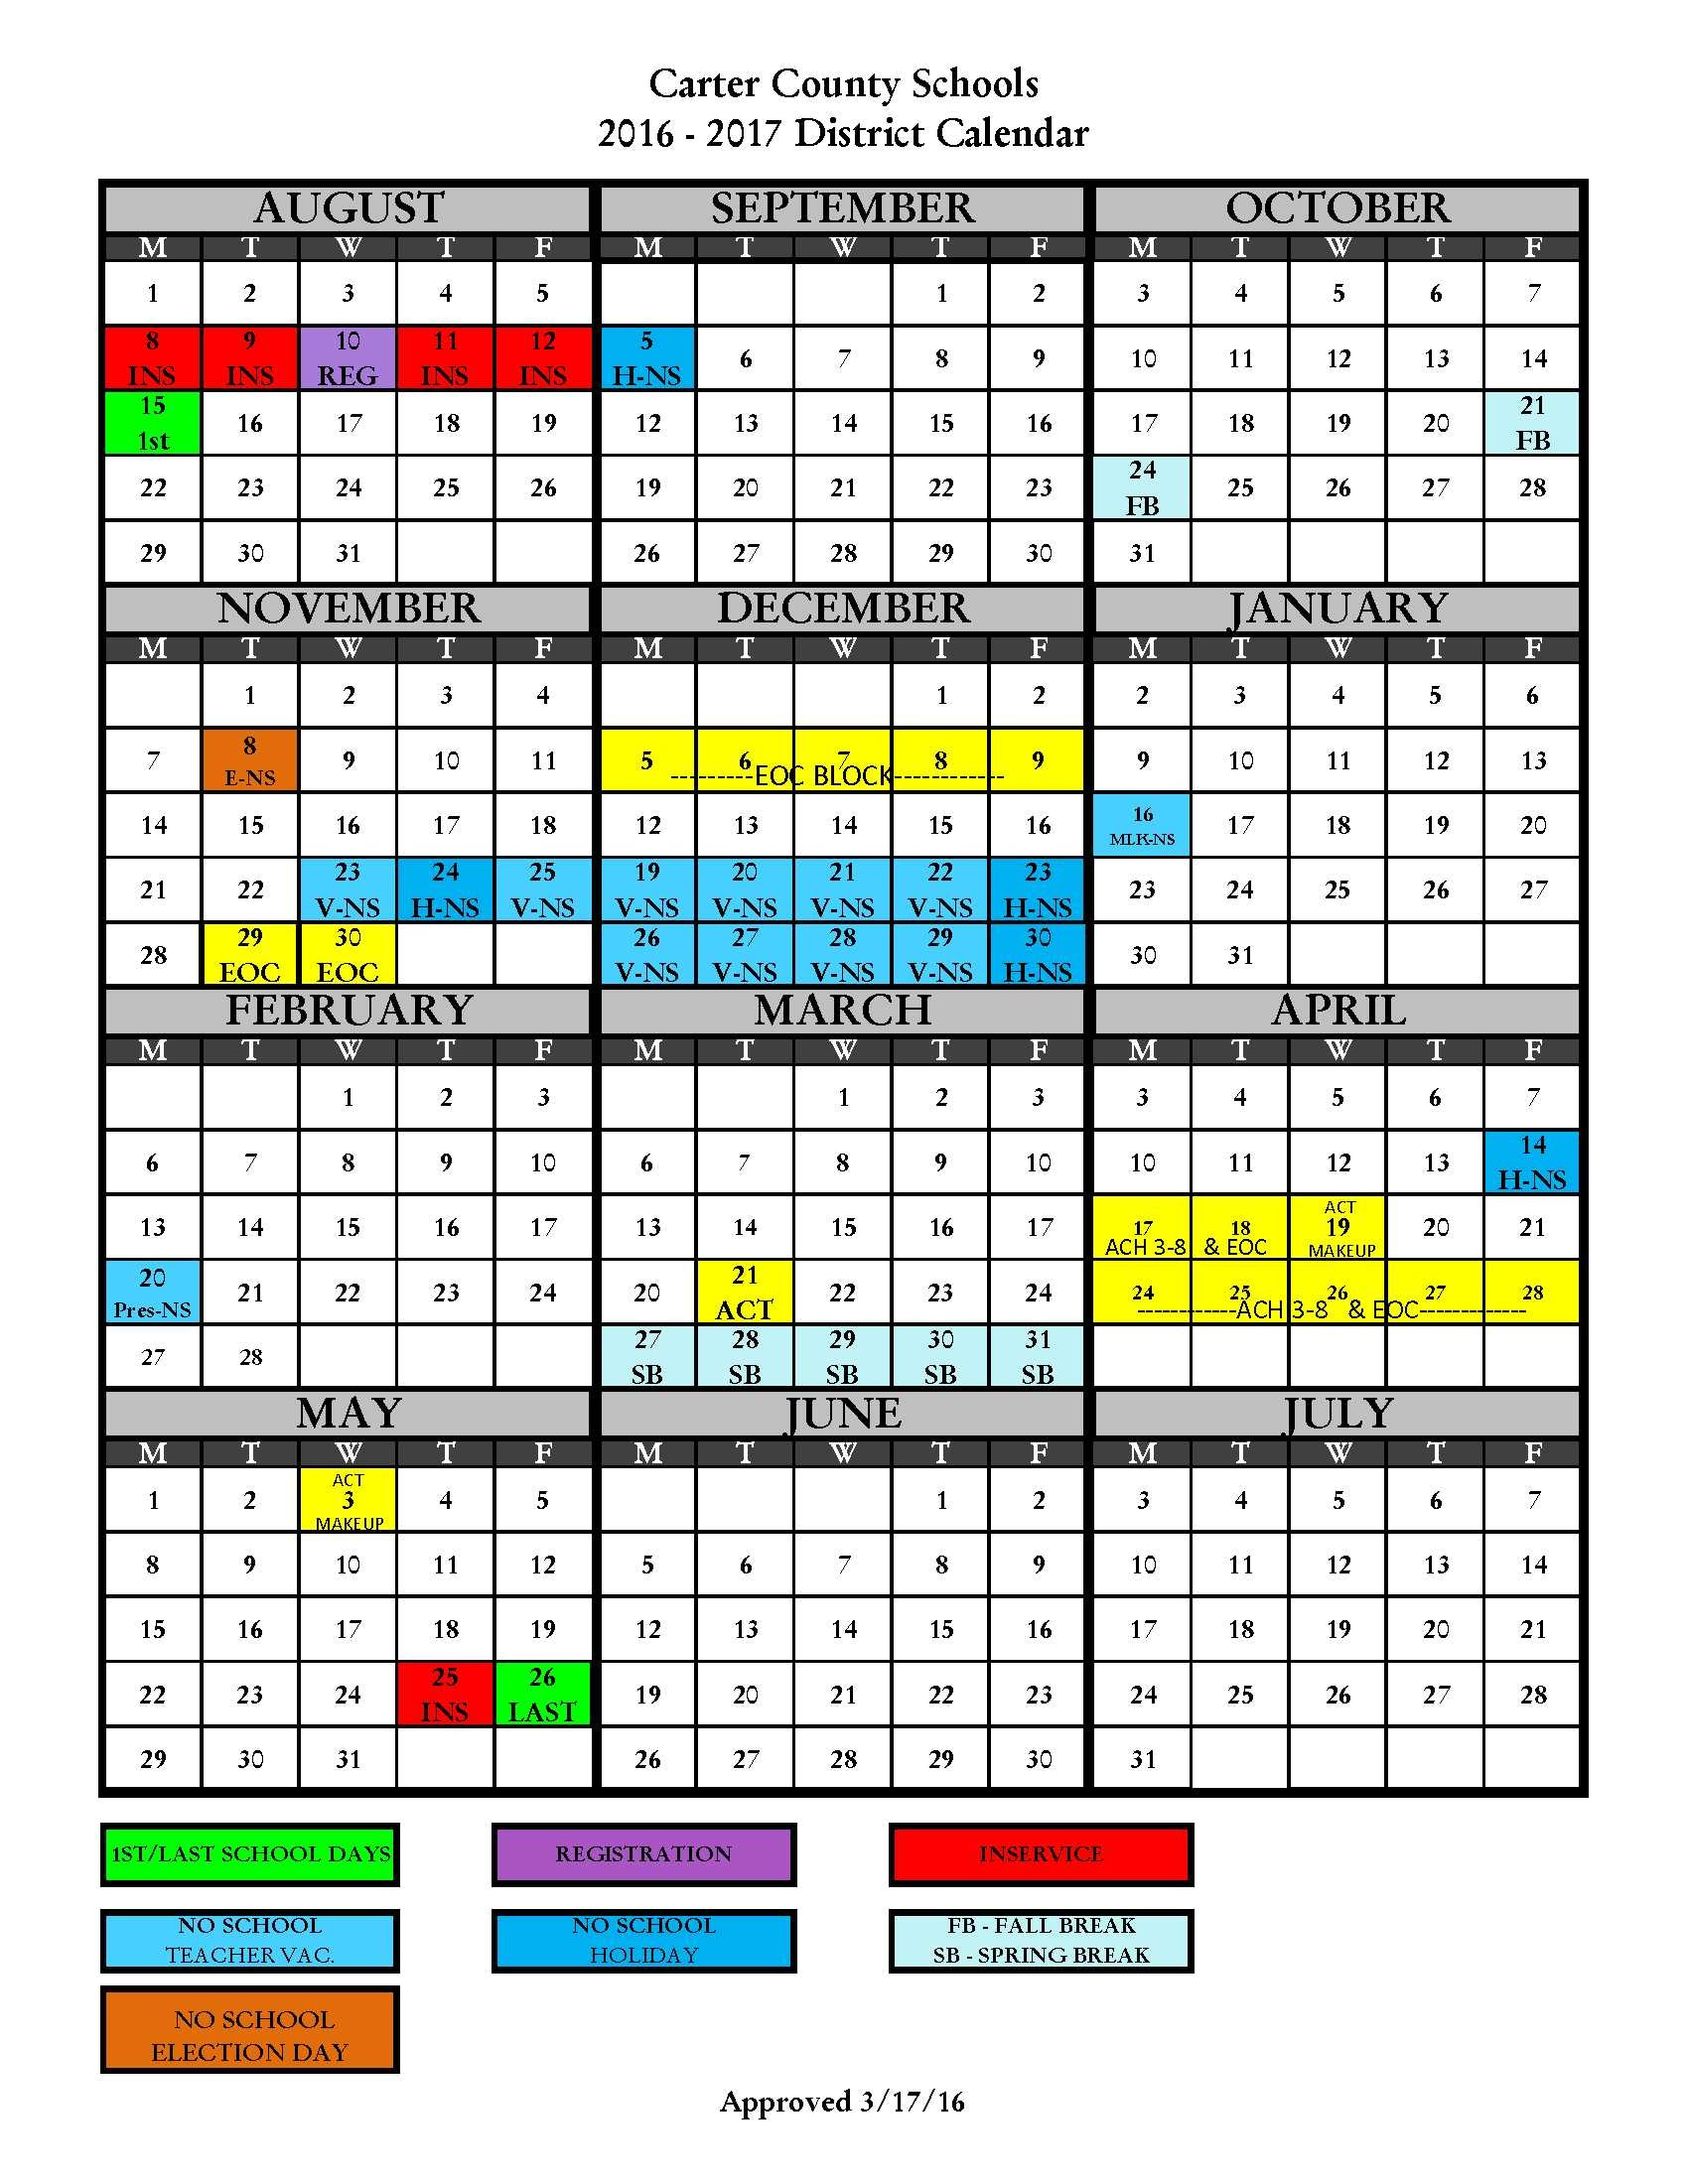 2016-2017 District Calendar - Carter County Schools intended for Alachua School Board Calendar